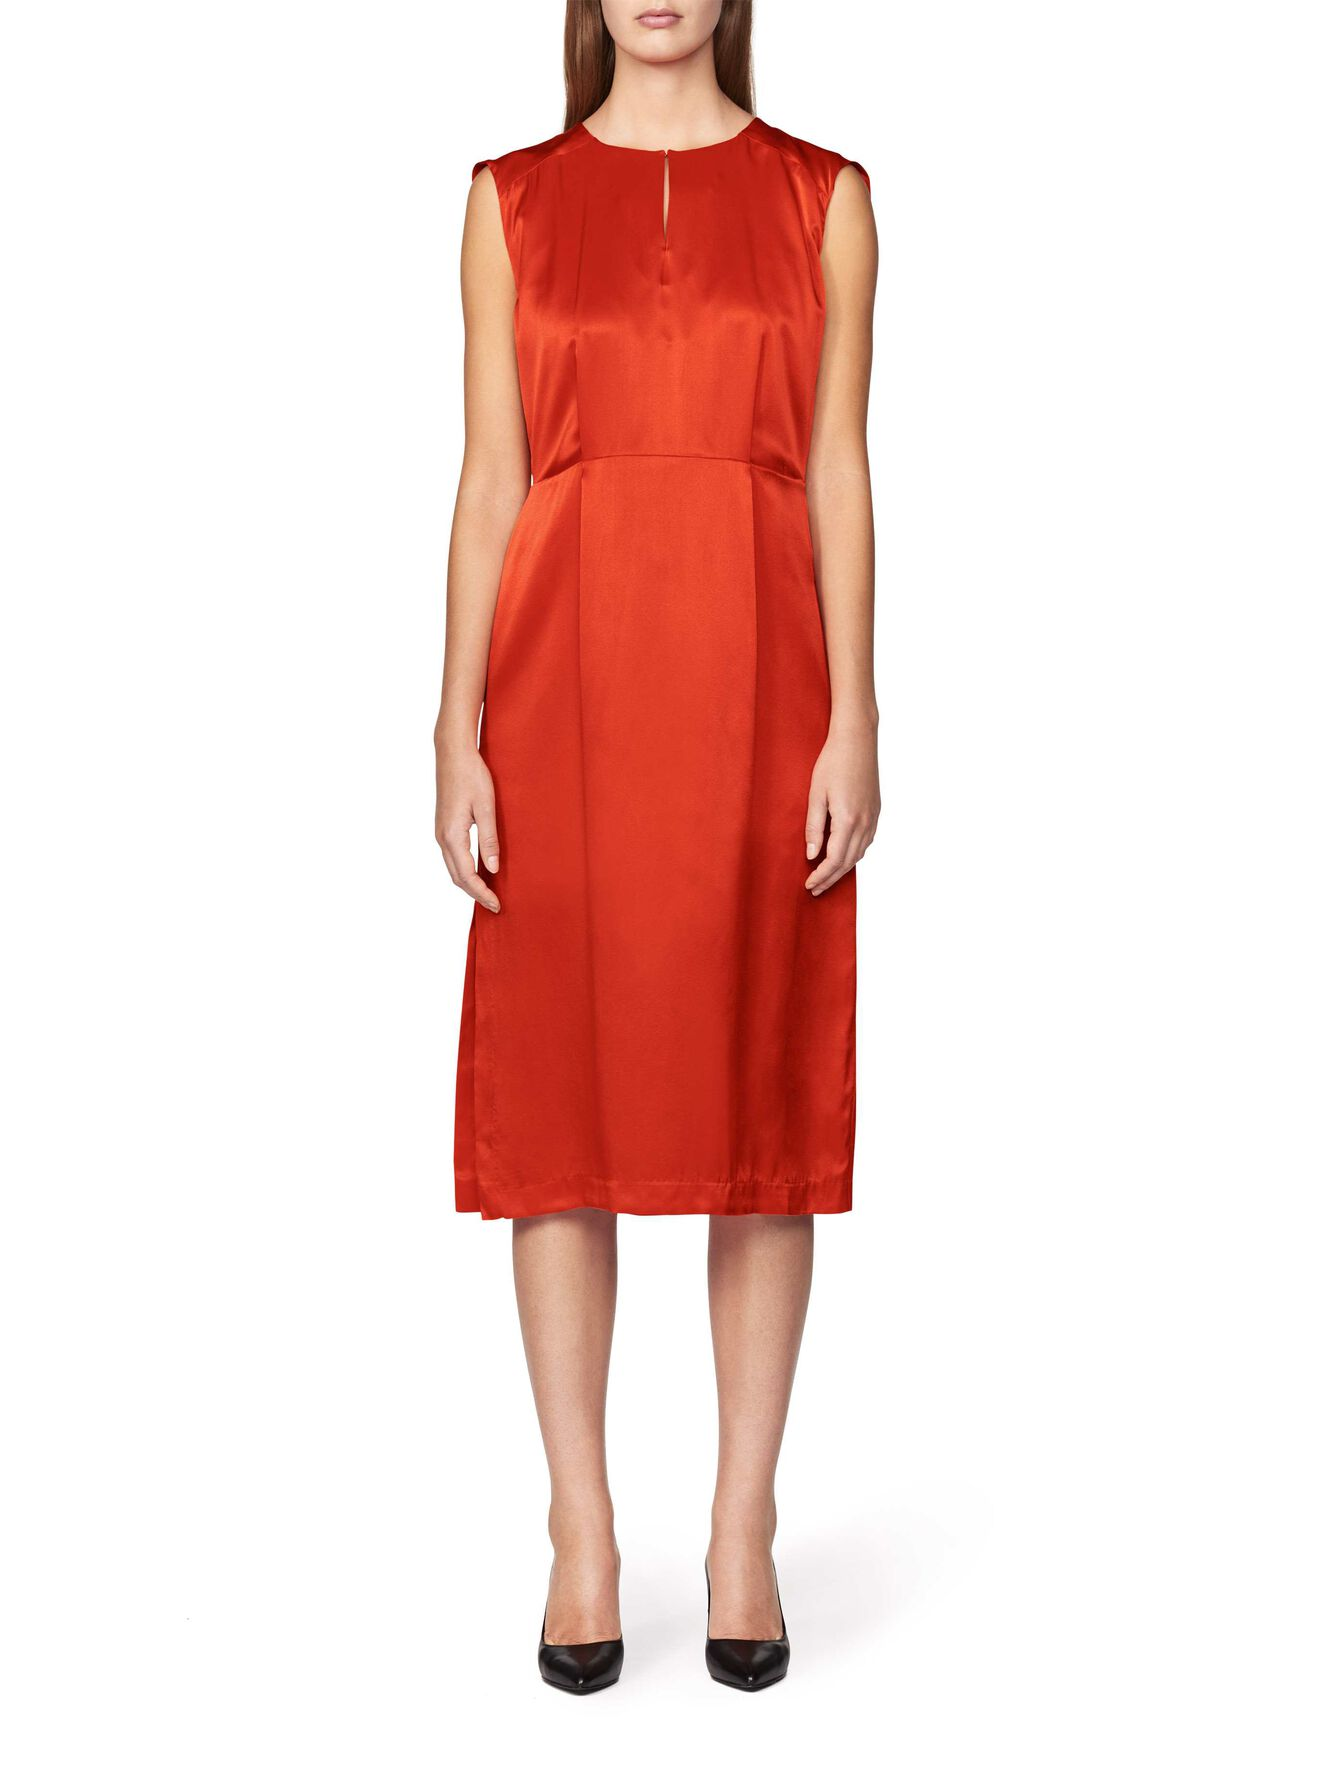 Agave Dress in Flame Red from Tiger of Sweden